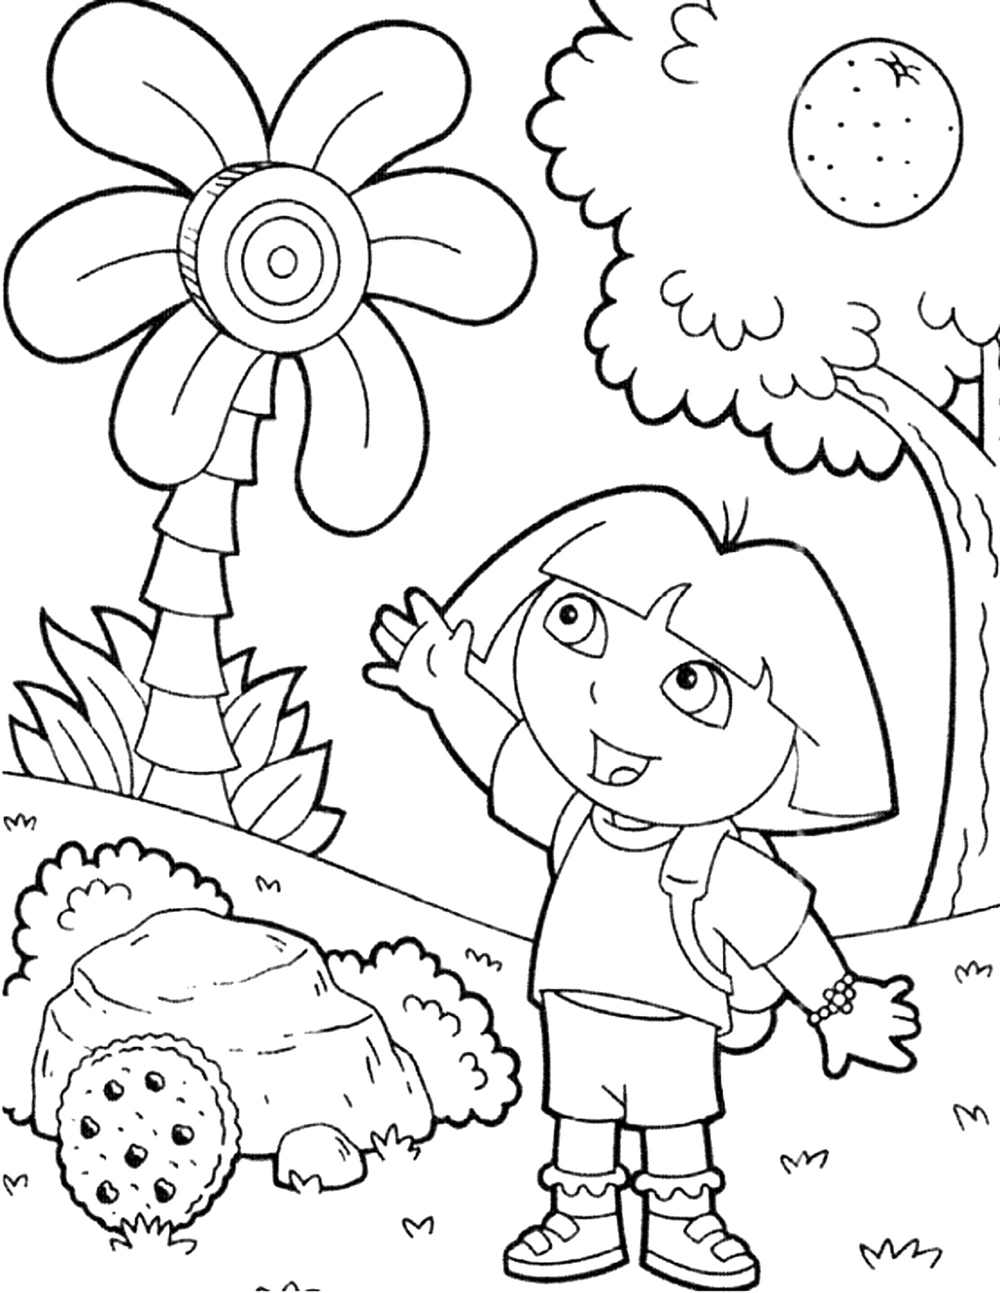 coloring pages dora the explorer print download dora coloring pages to learn new things pages explorer the coloring dora